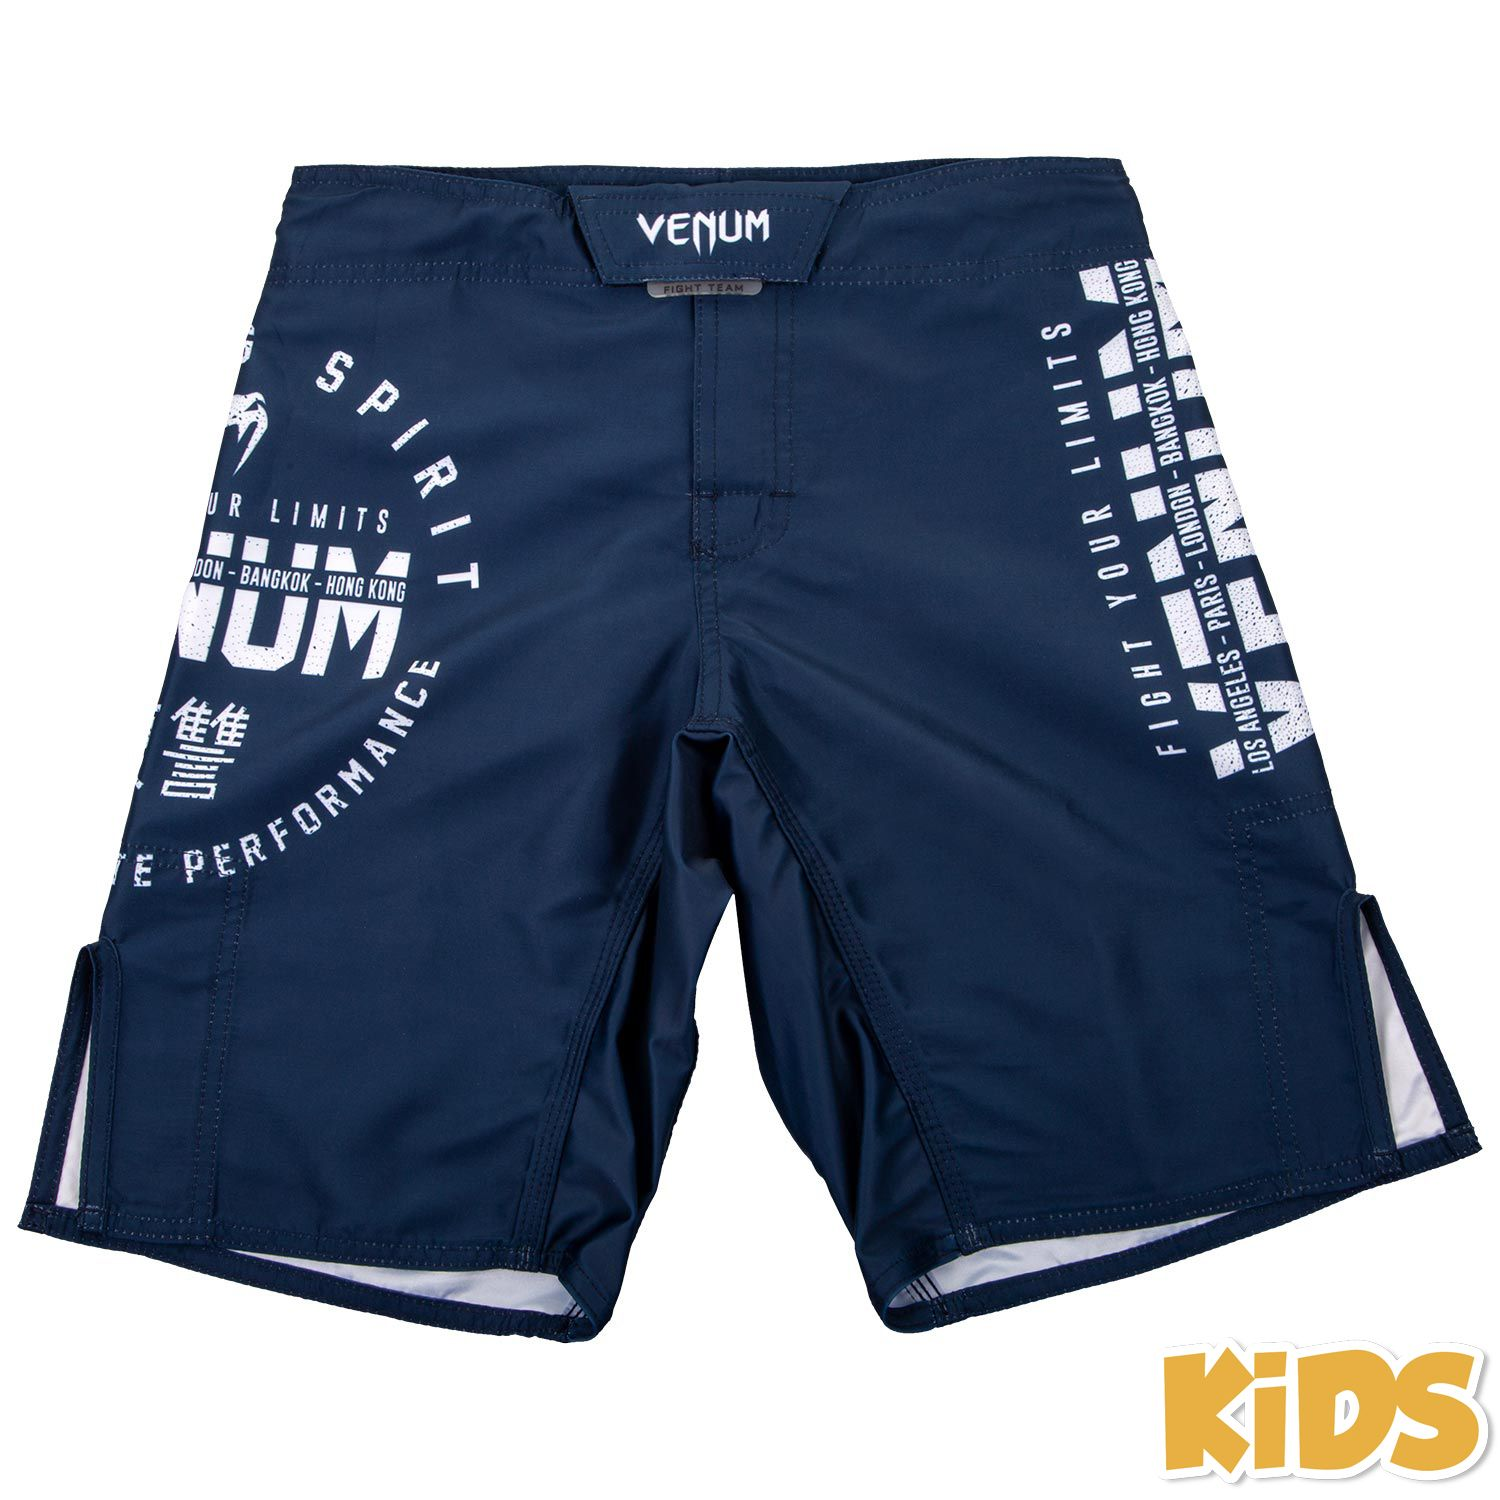 Short MMA enfant Venum signature